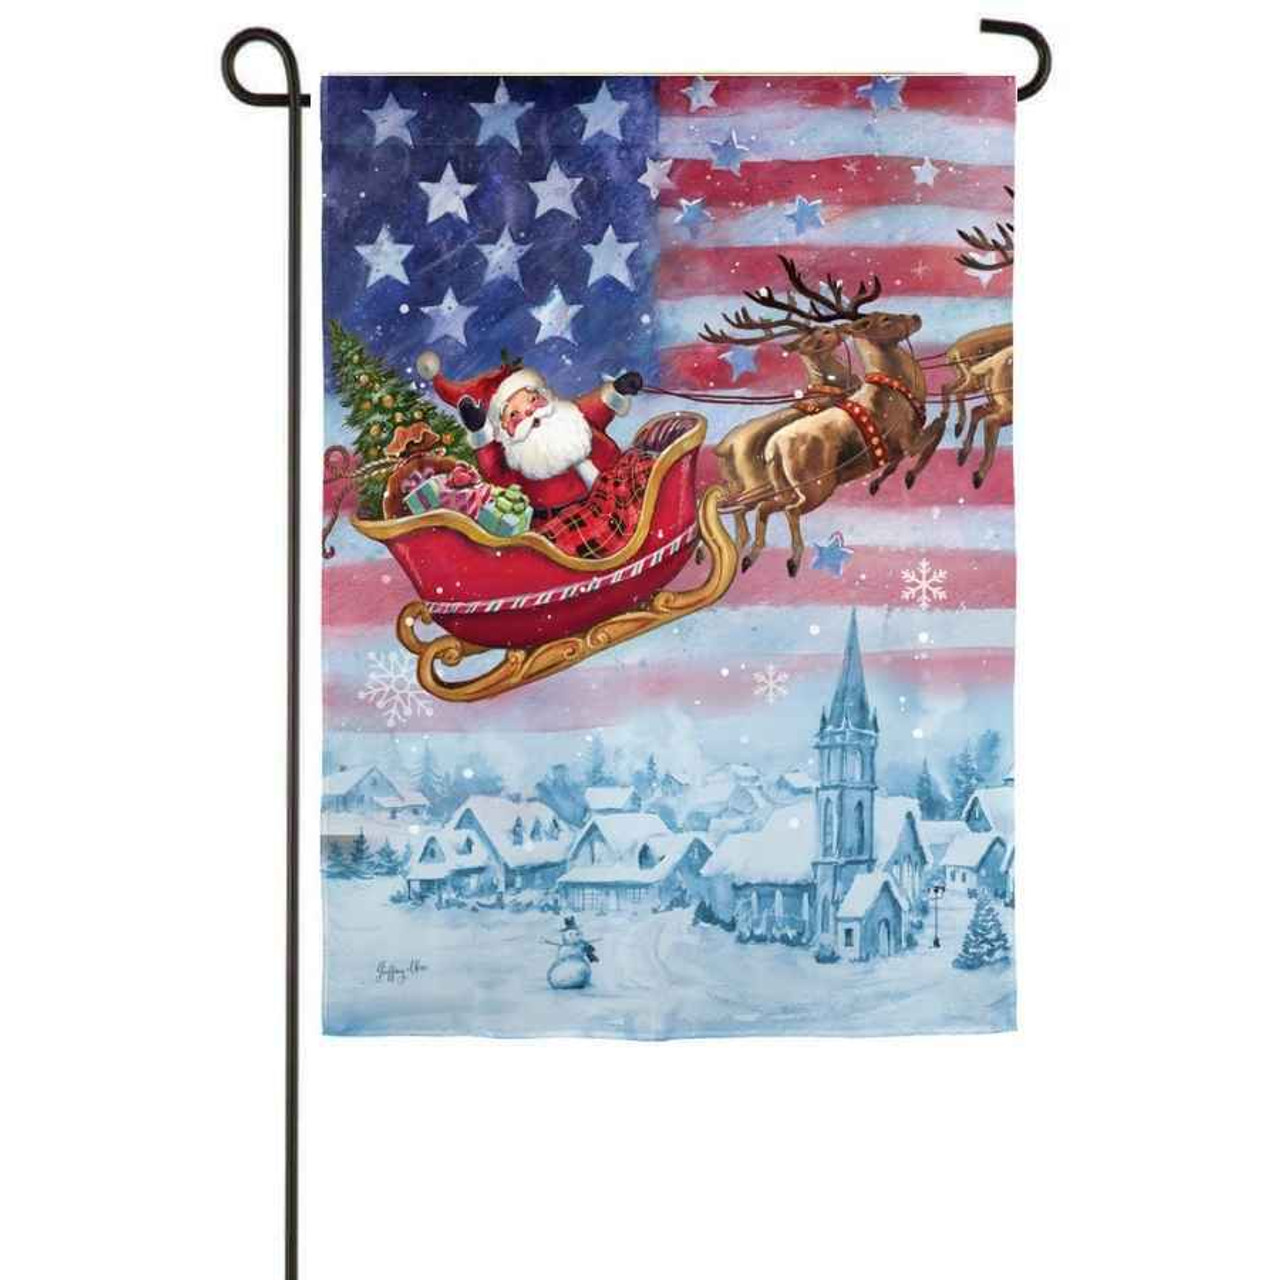 A garden flag with Santa flying in his sleigh over a snowy town. The background has an American flag.